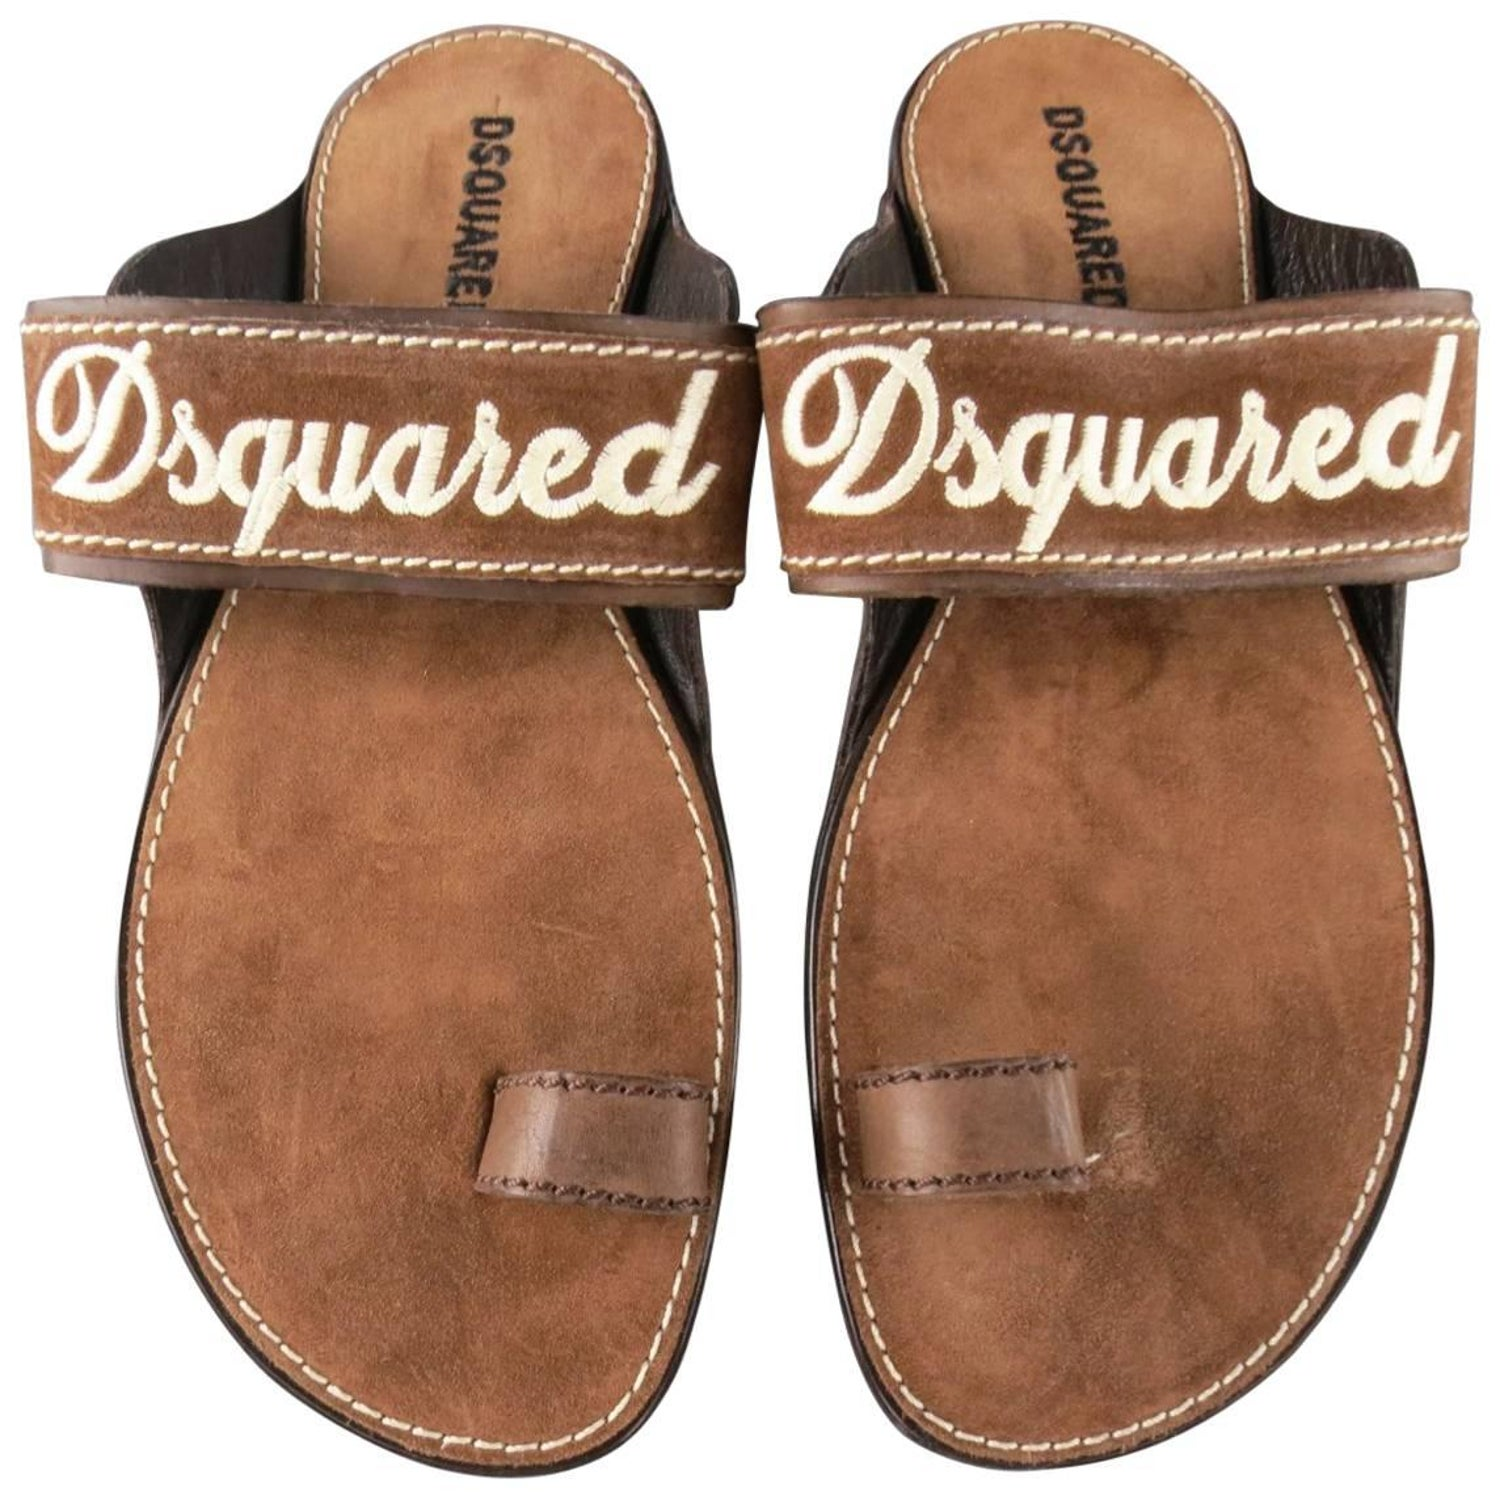 5ea1bcedb05 Men s DSQUARED2 Size 8 Brown Embroidered Logo Suede Sandals For Sale at  1stdibs